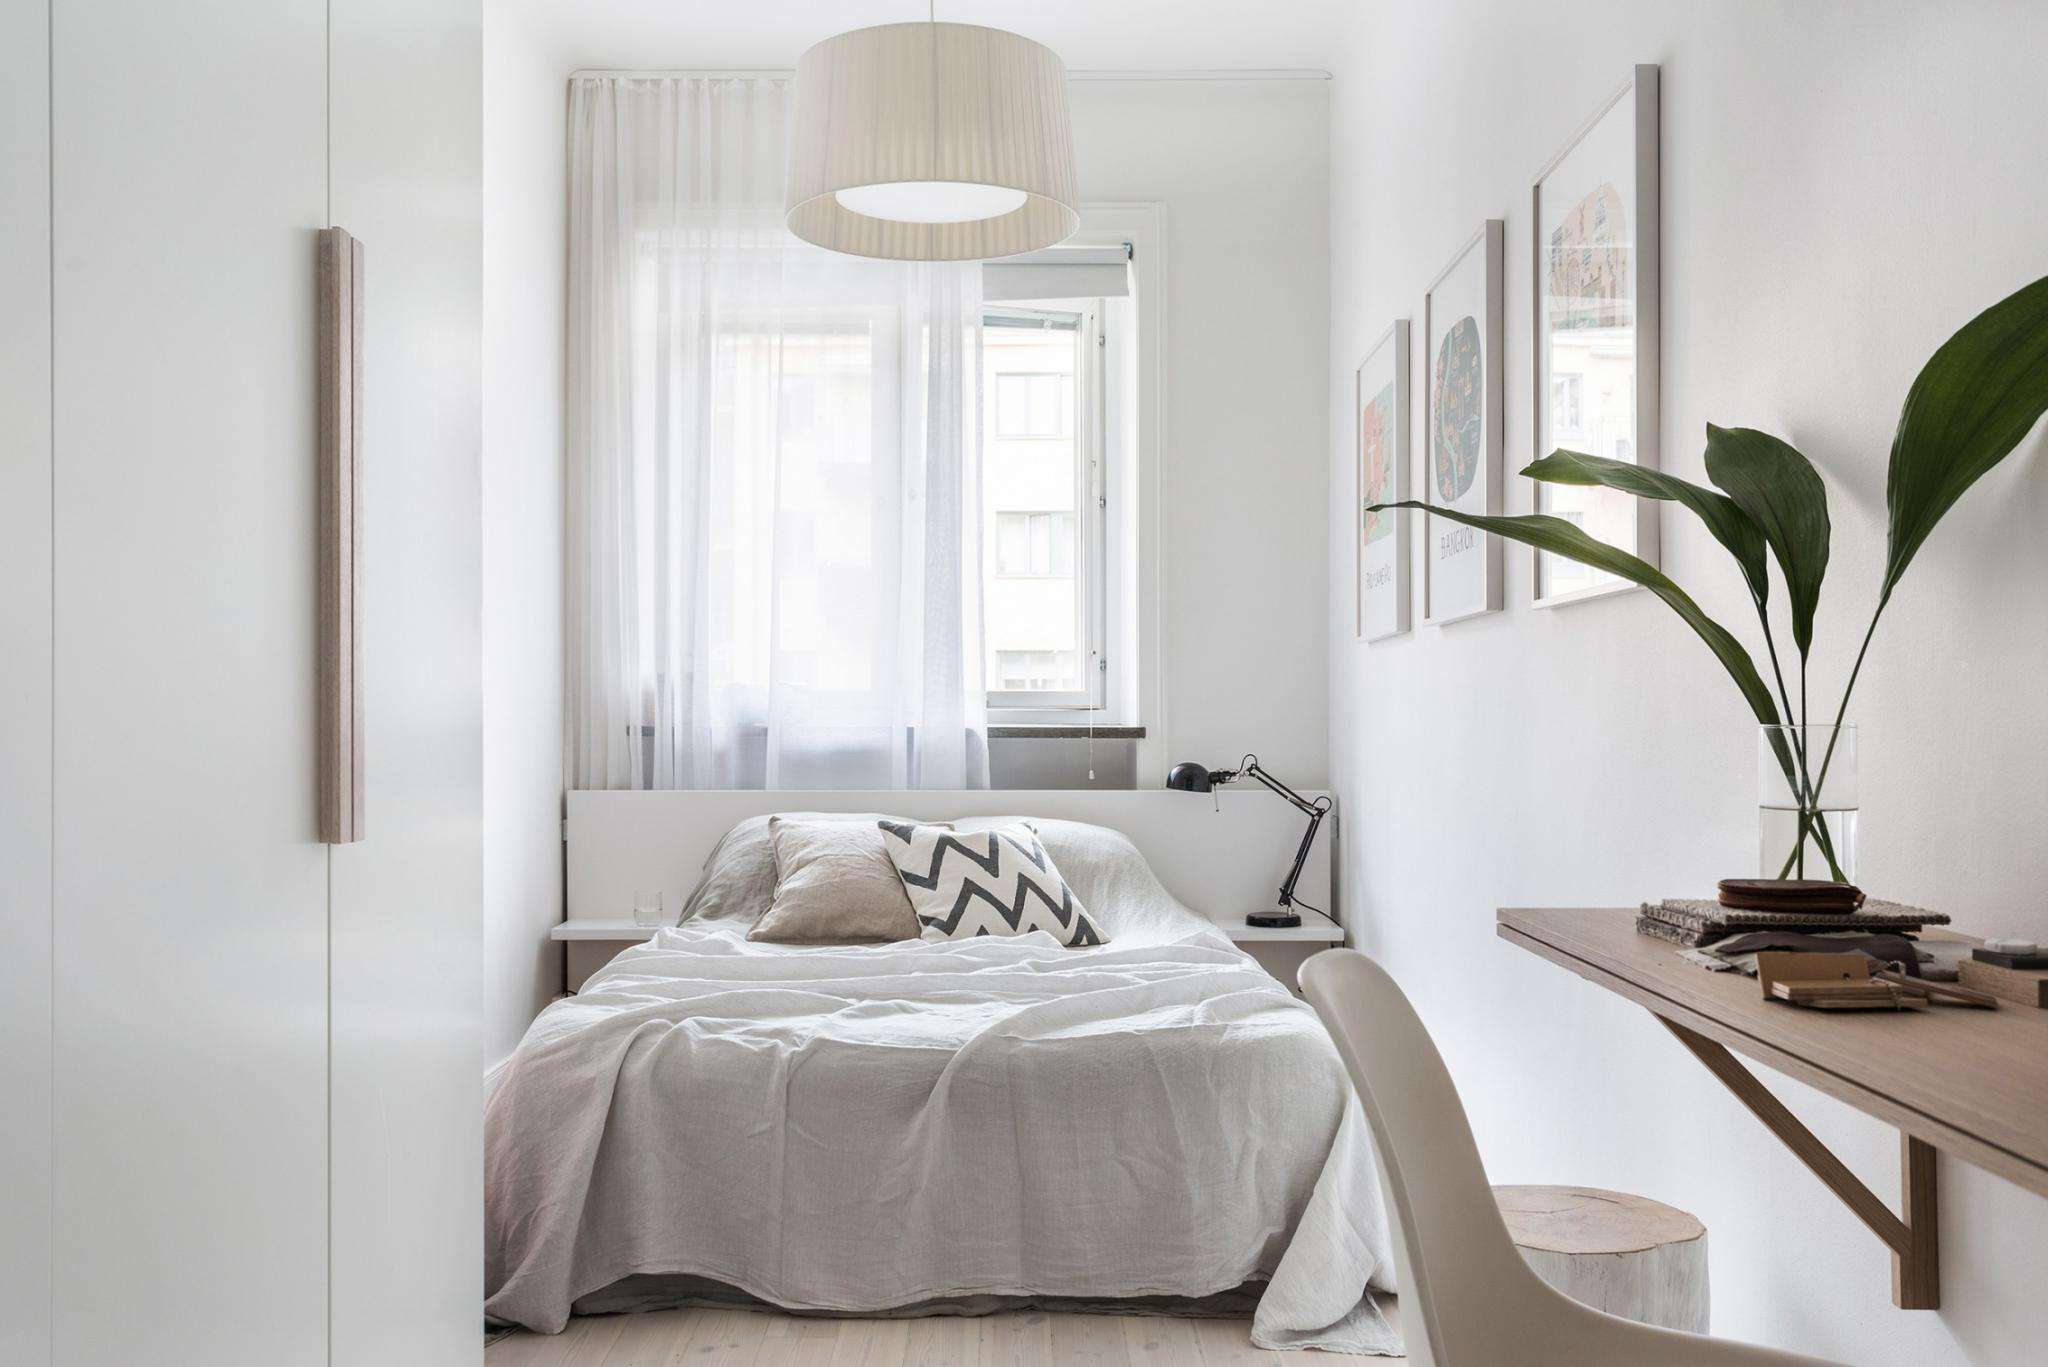 19 Pieces of Chic Small Bedroom Furniture (All for Under $500)